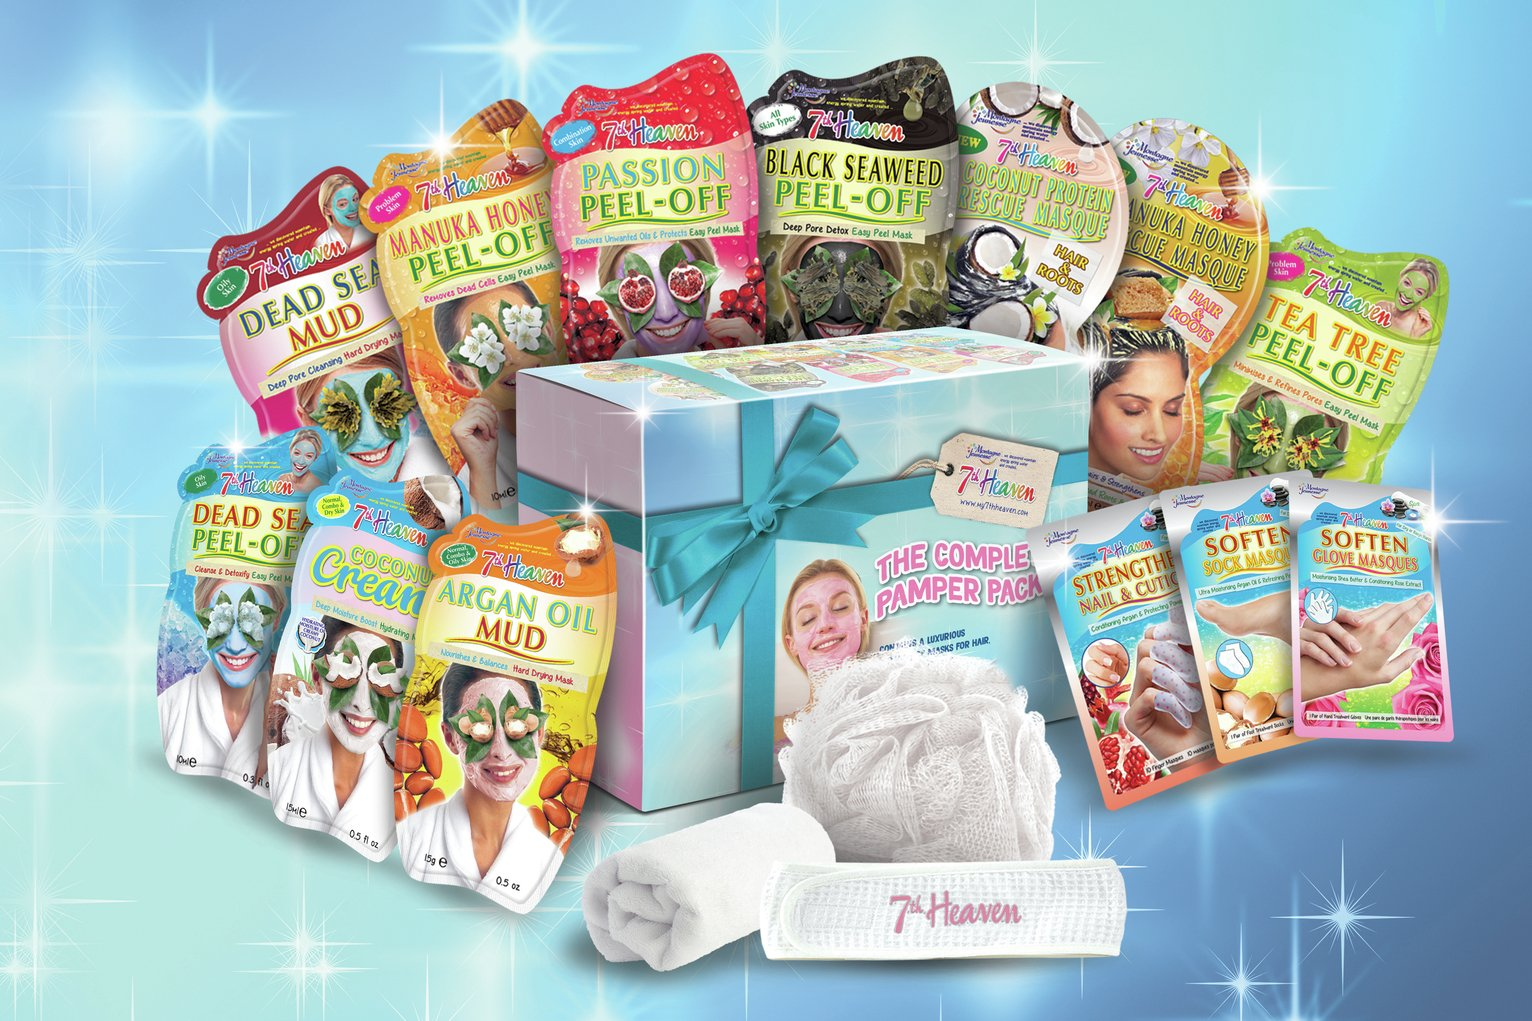 Image result for 7th heaven the complete pamper pack